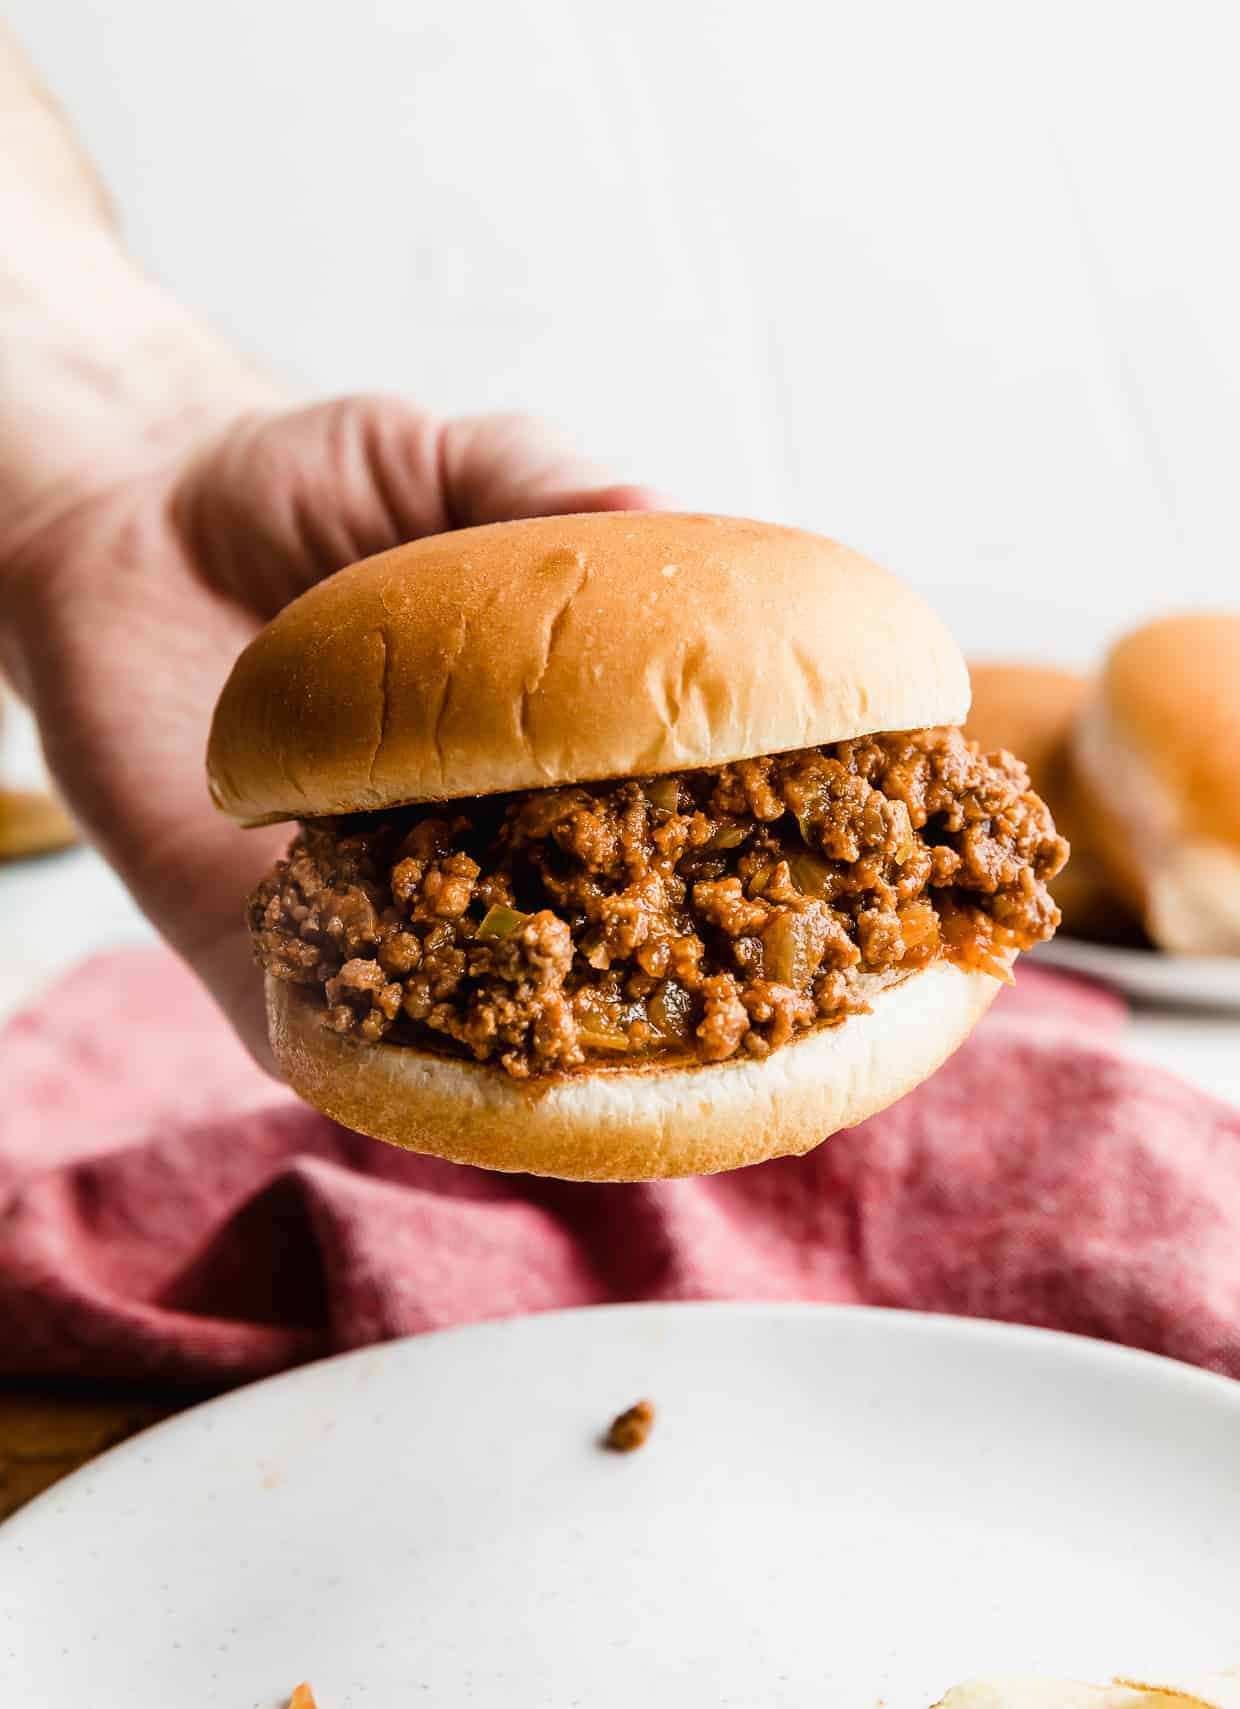 A hand holding up a hamburger bun that is very full of the best homemade sloppy Joe mix.